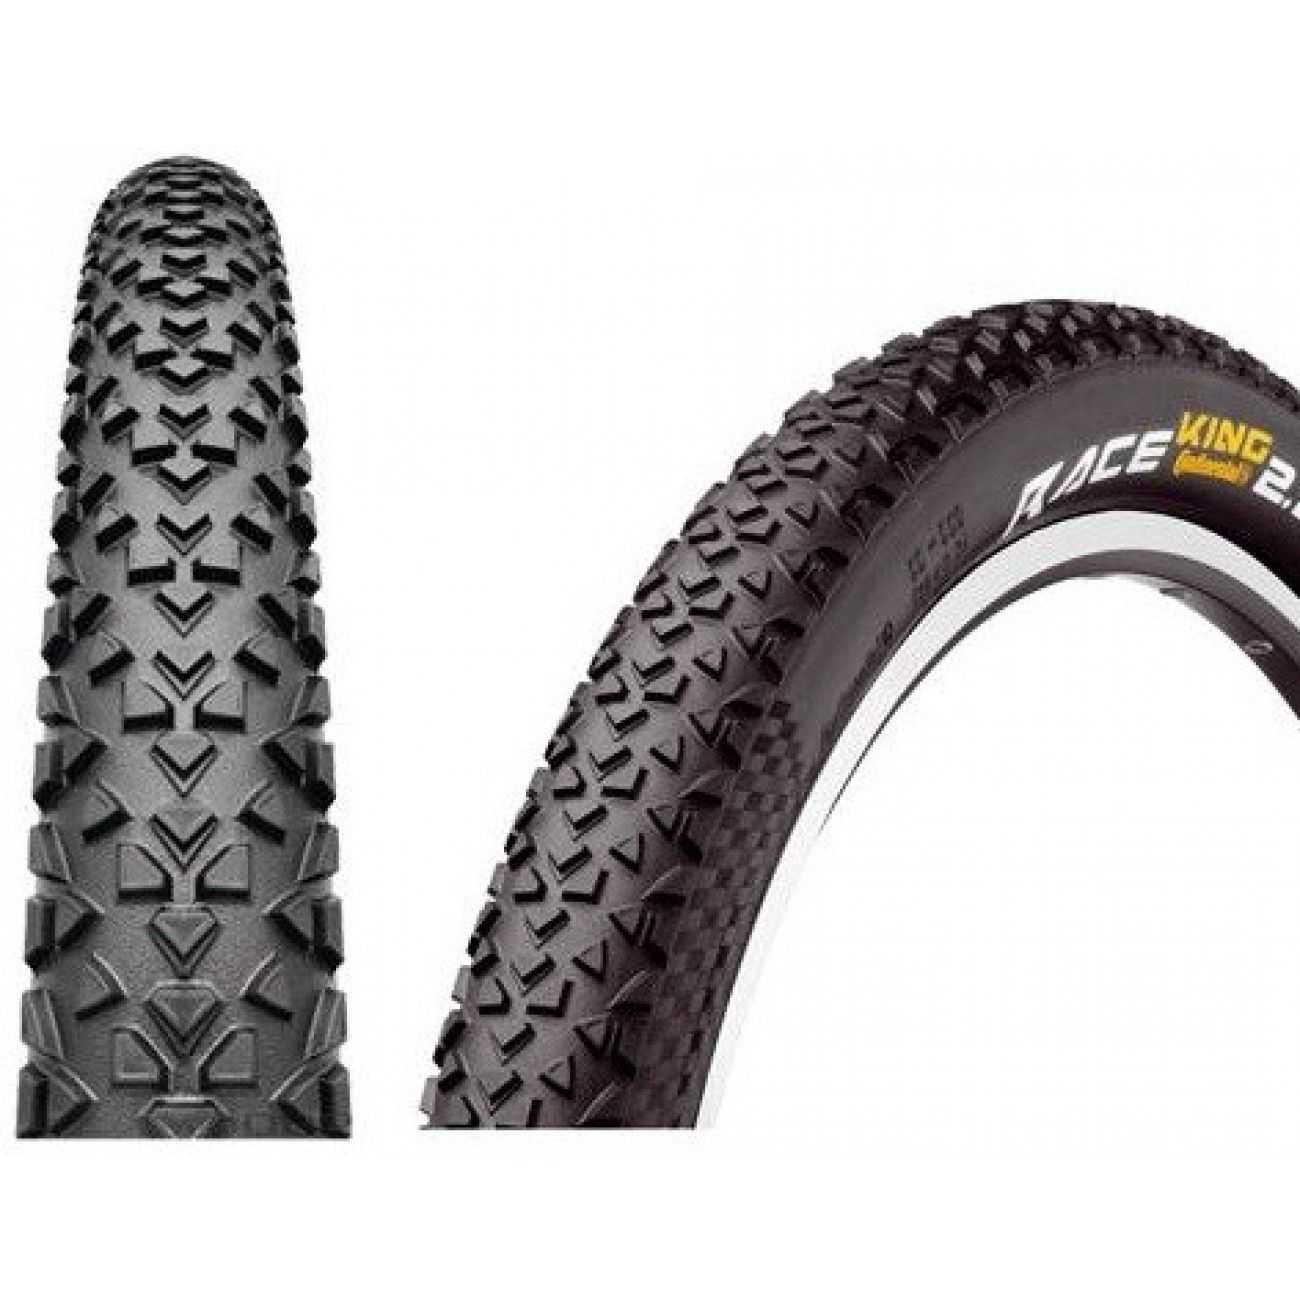 Pneu Continental Race King 29x2.0 Kevlar 29er